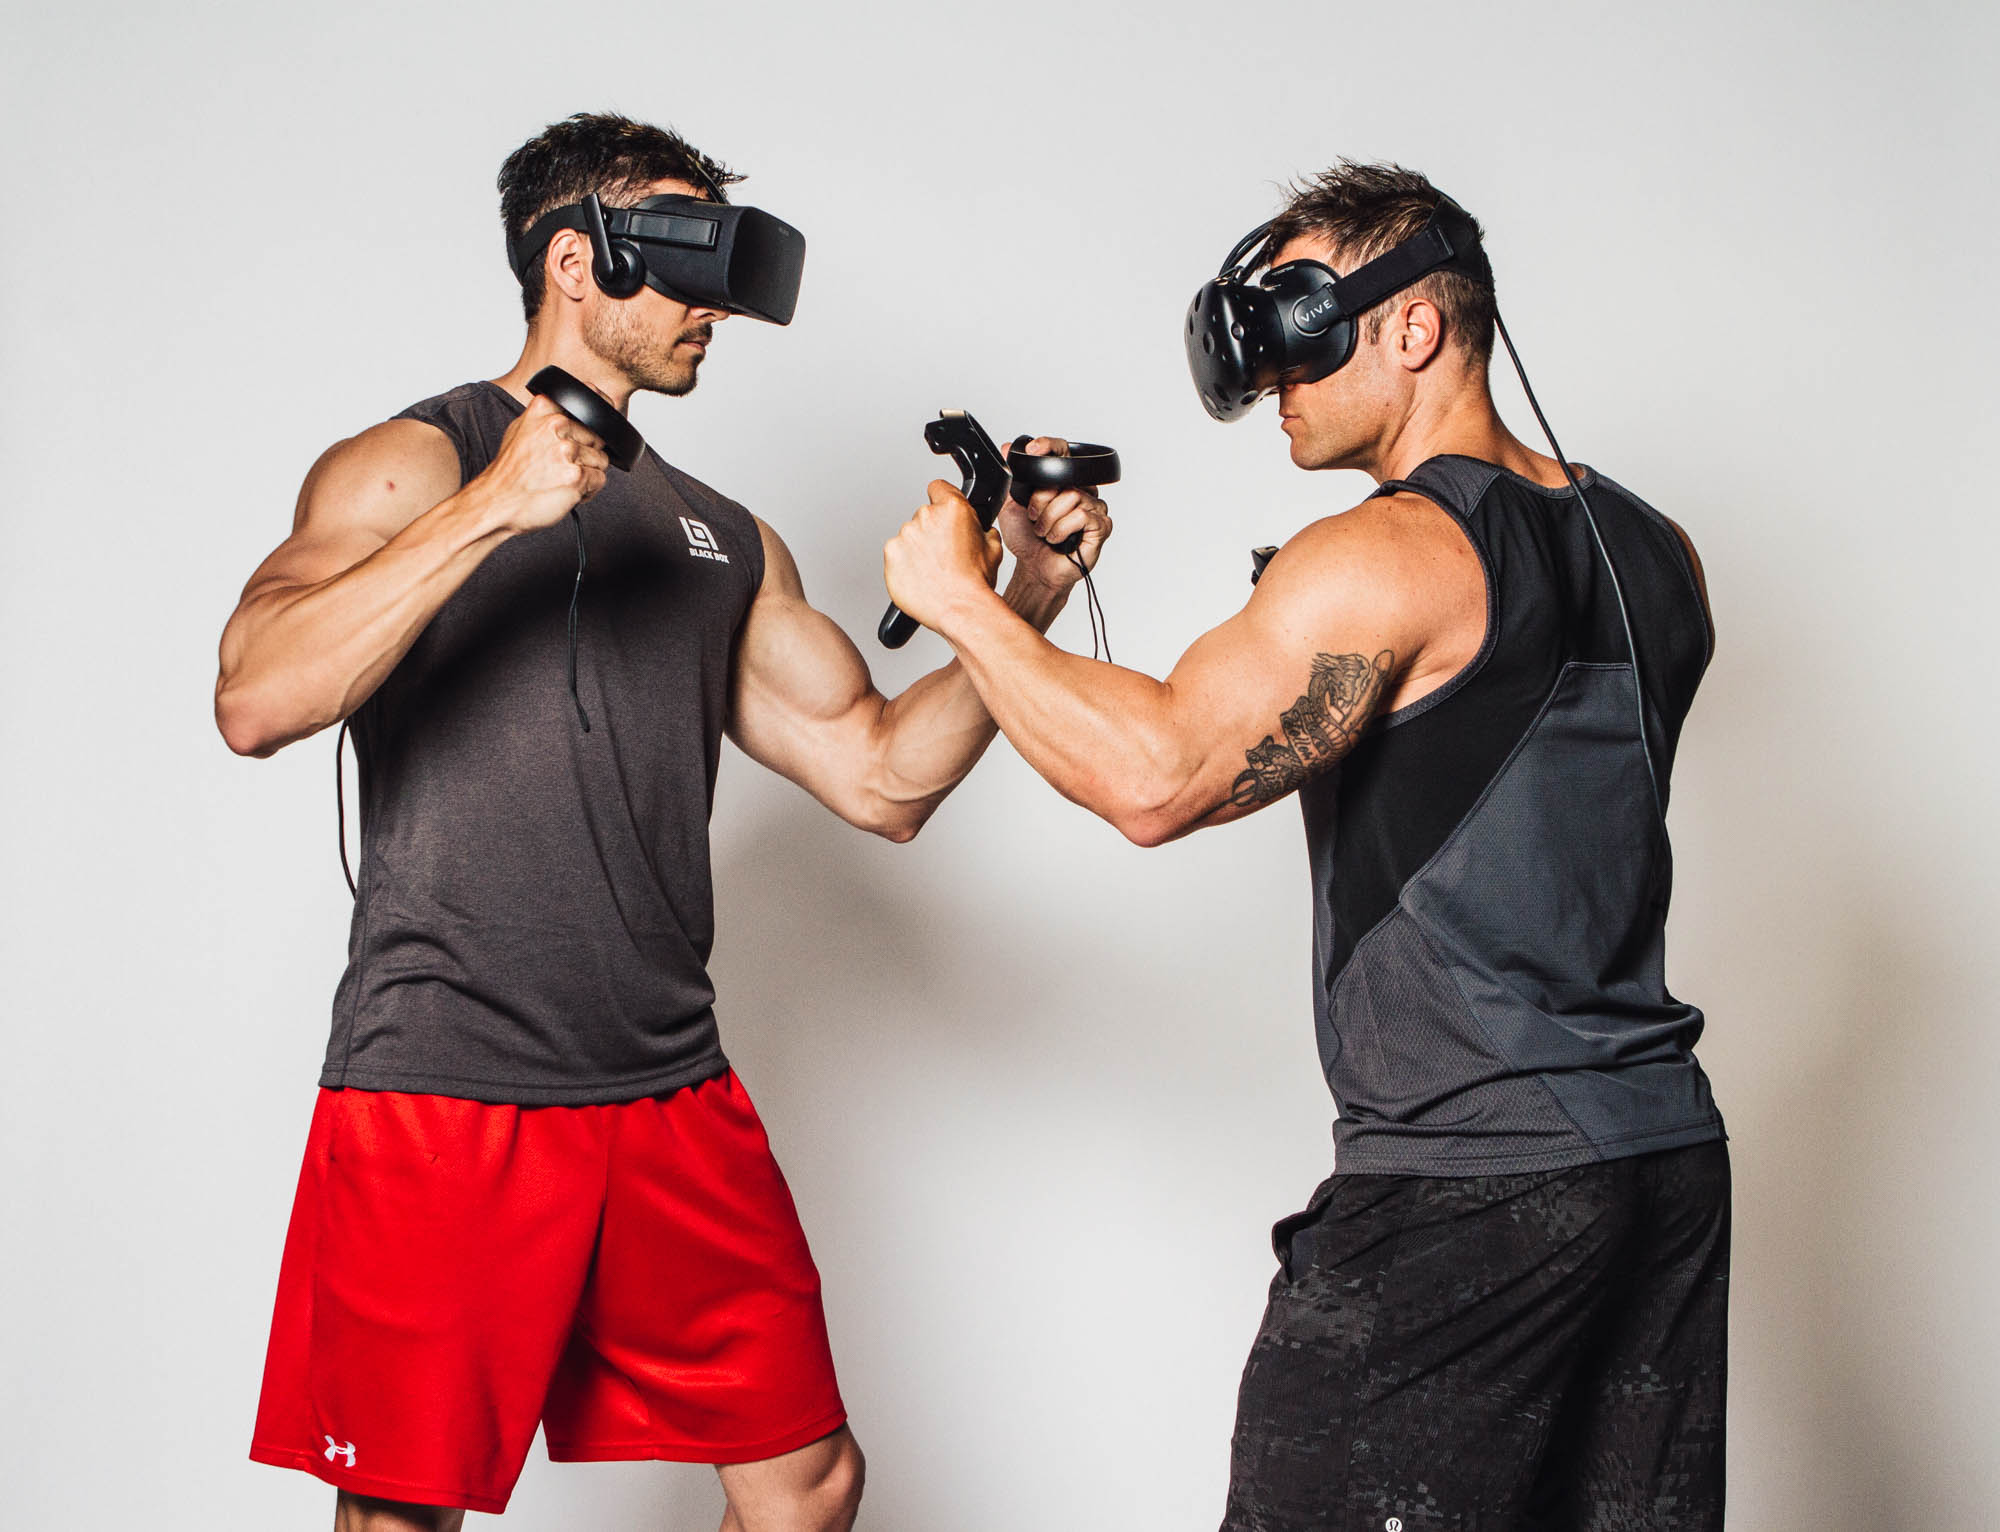 7 Reasons Virtual Reality Will Change Sports Forever - Part 2